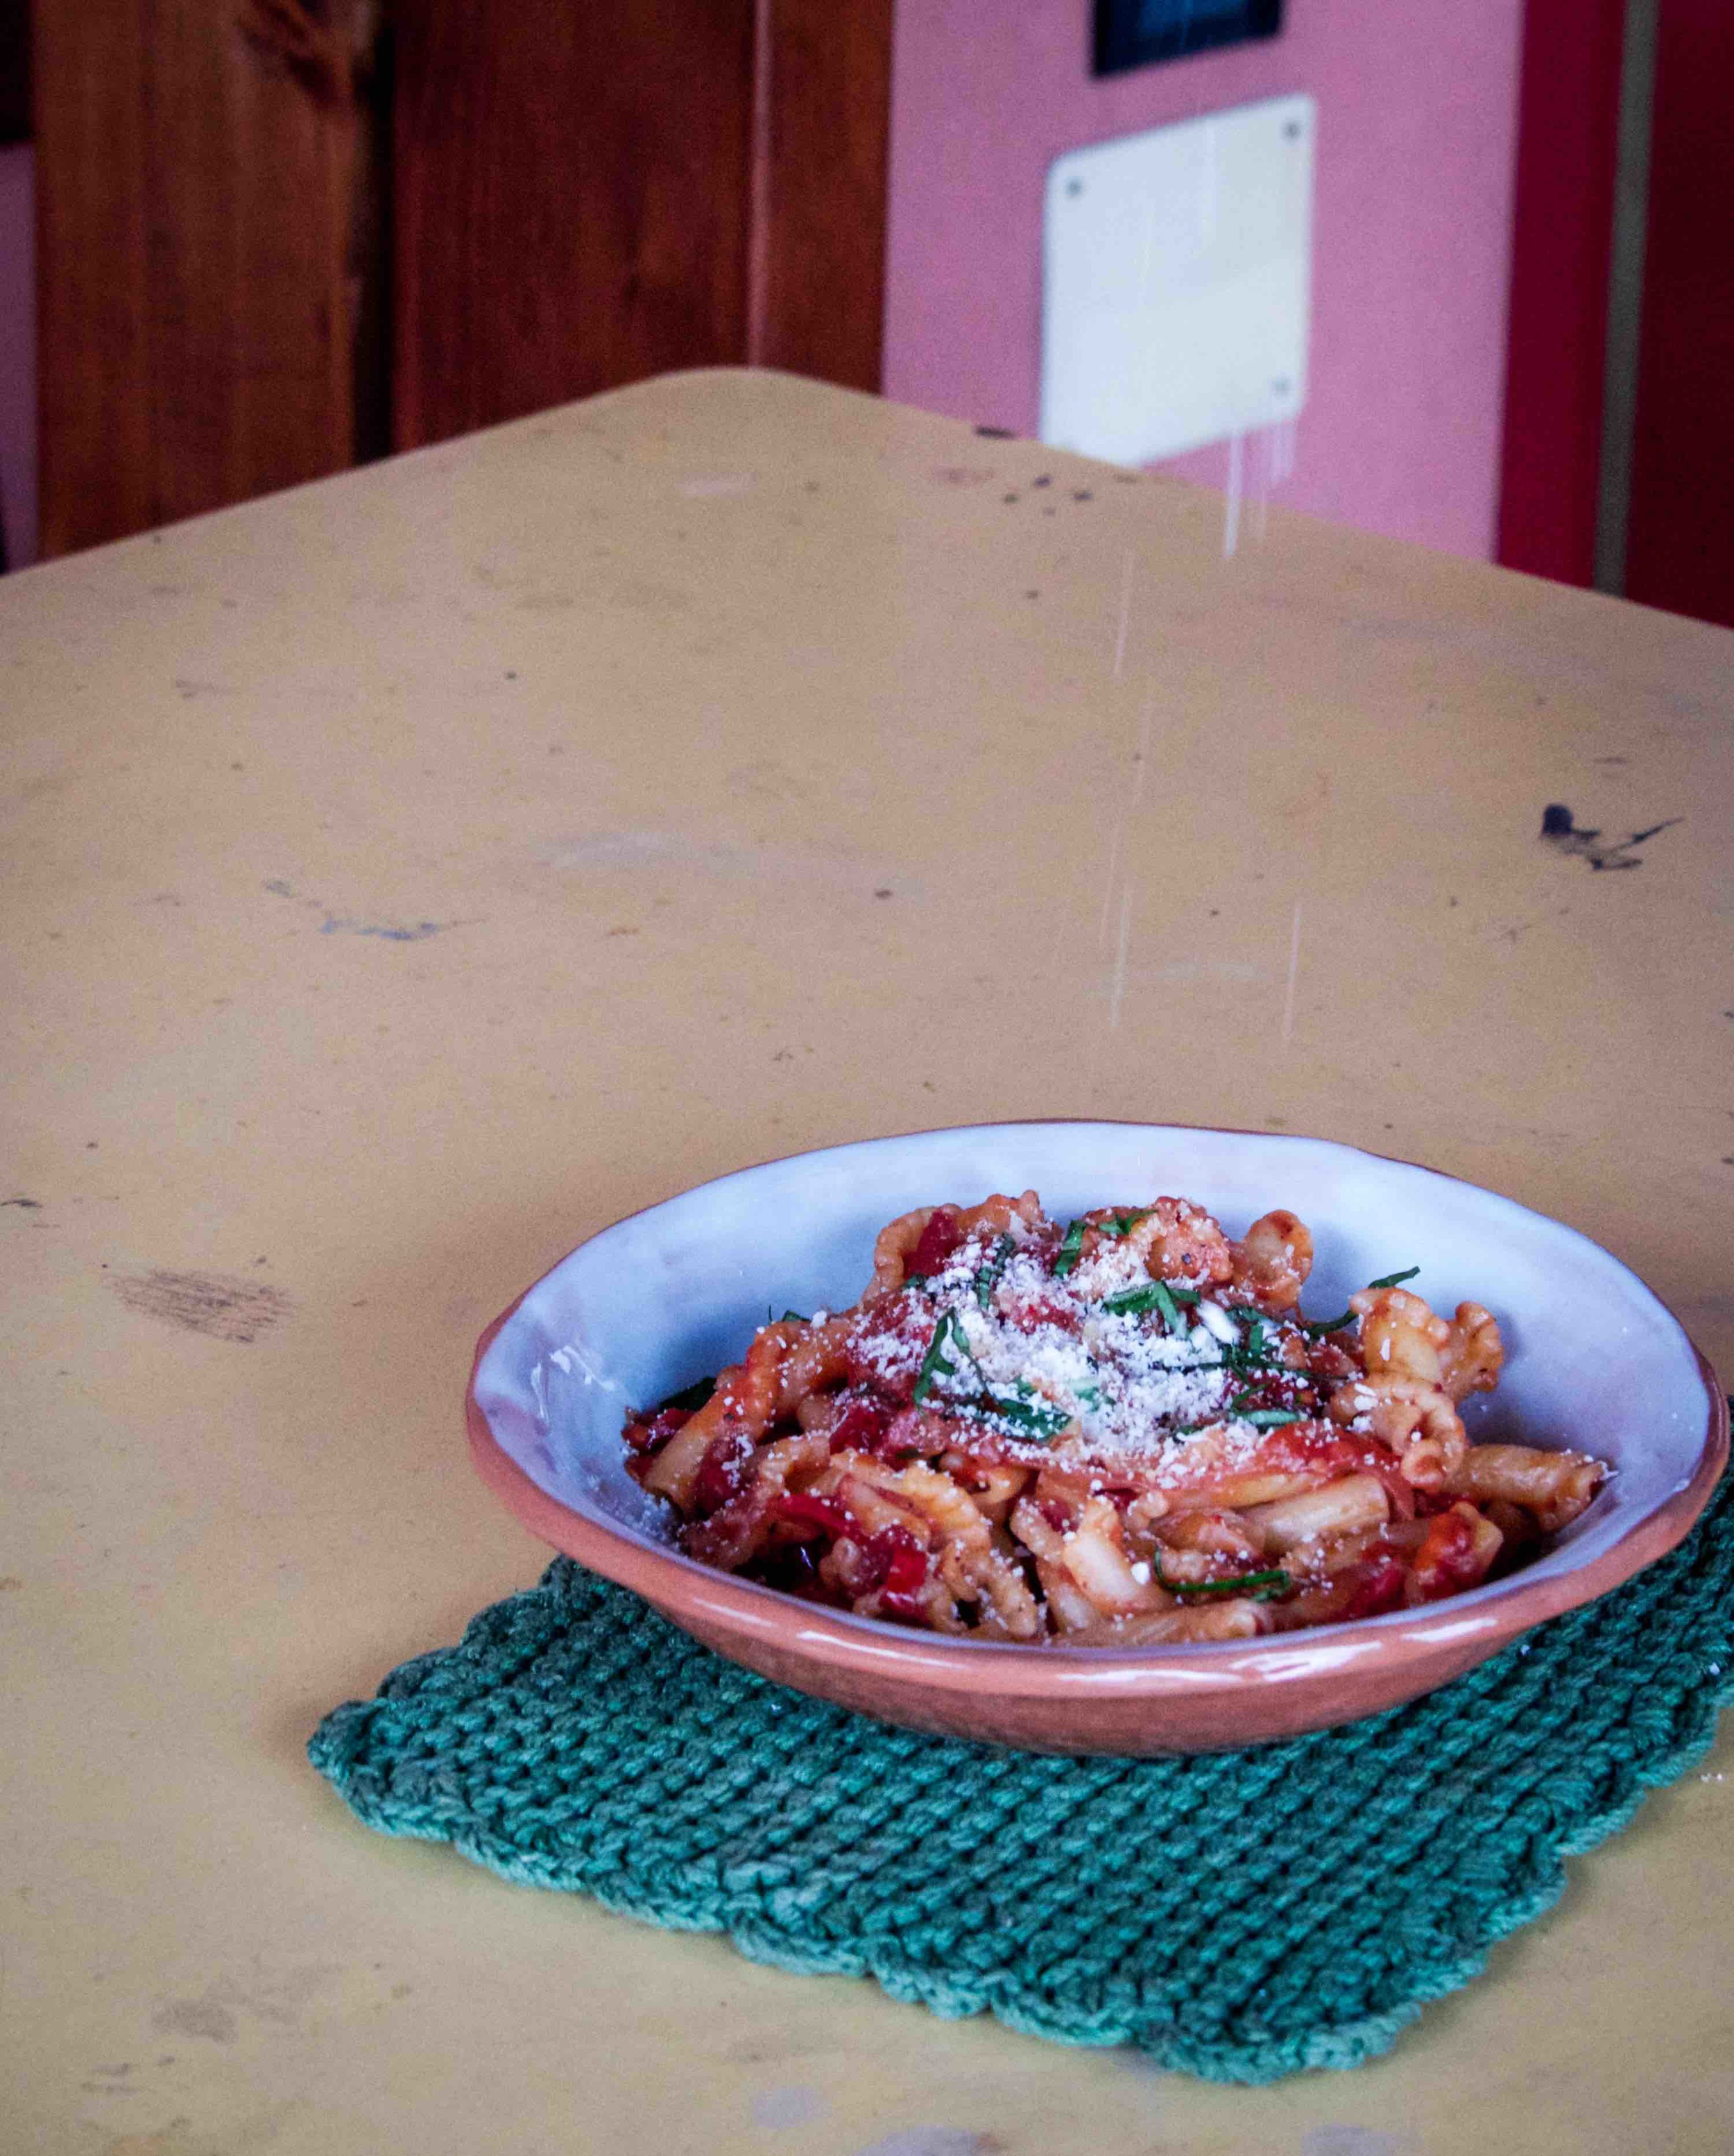 Gigliwith tomato sauce